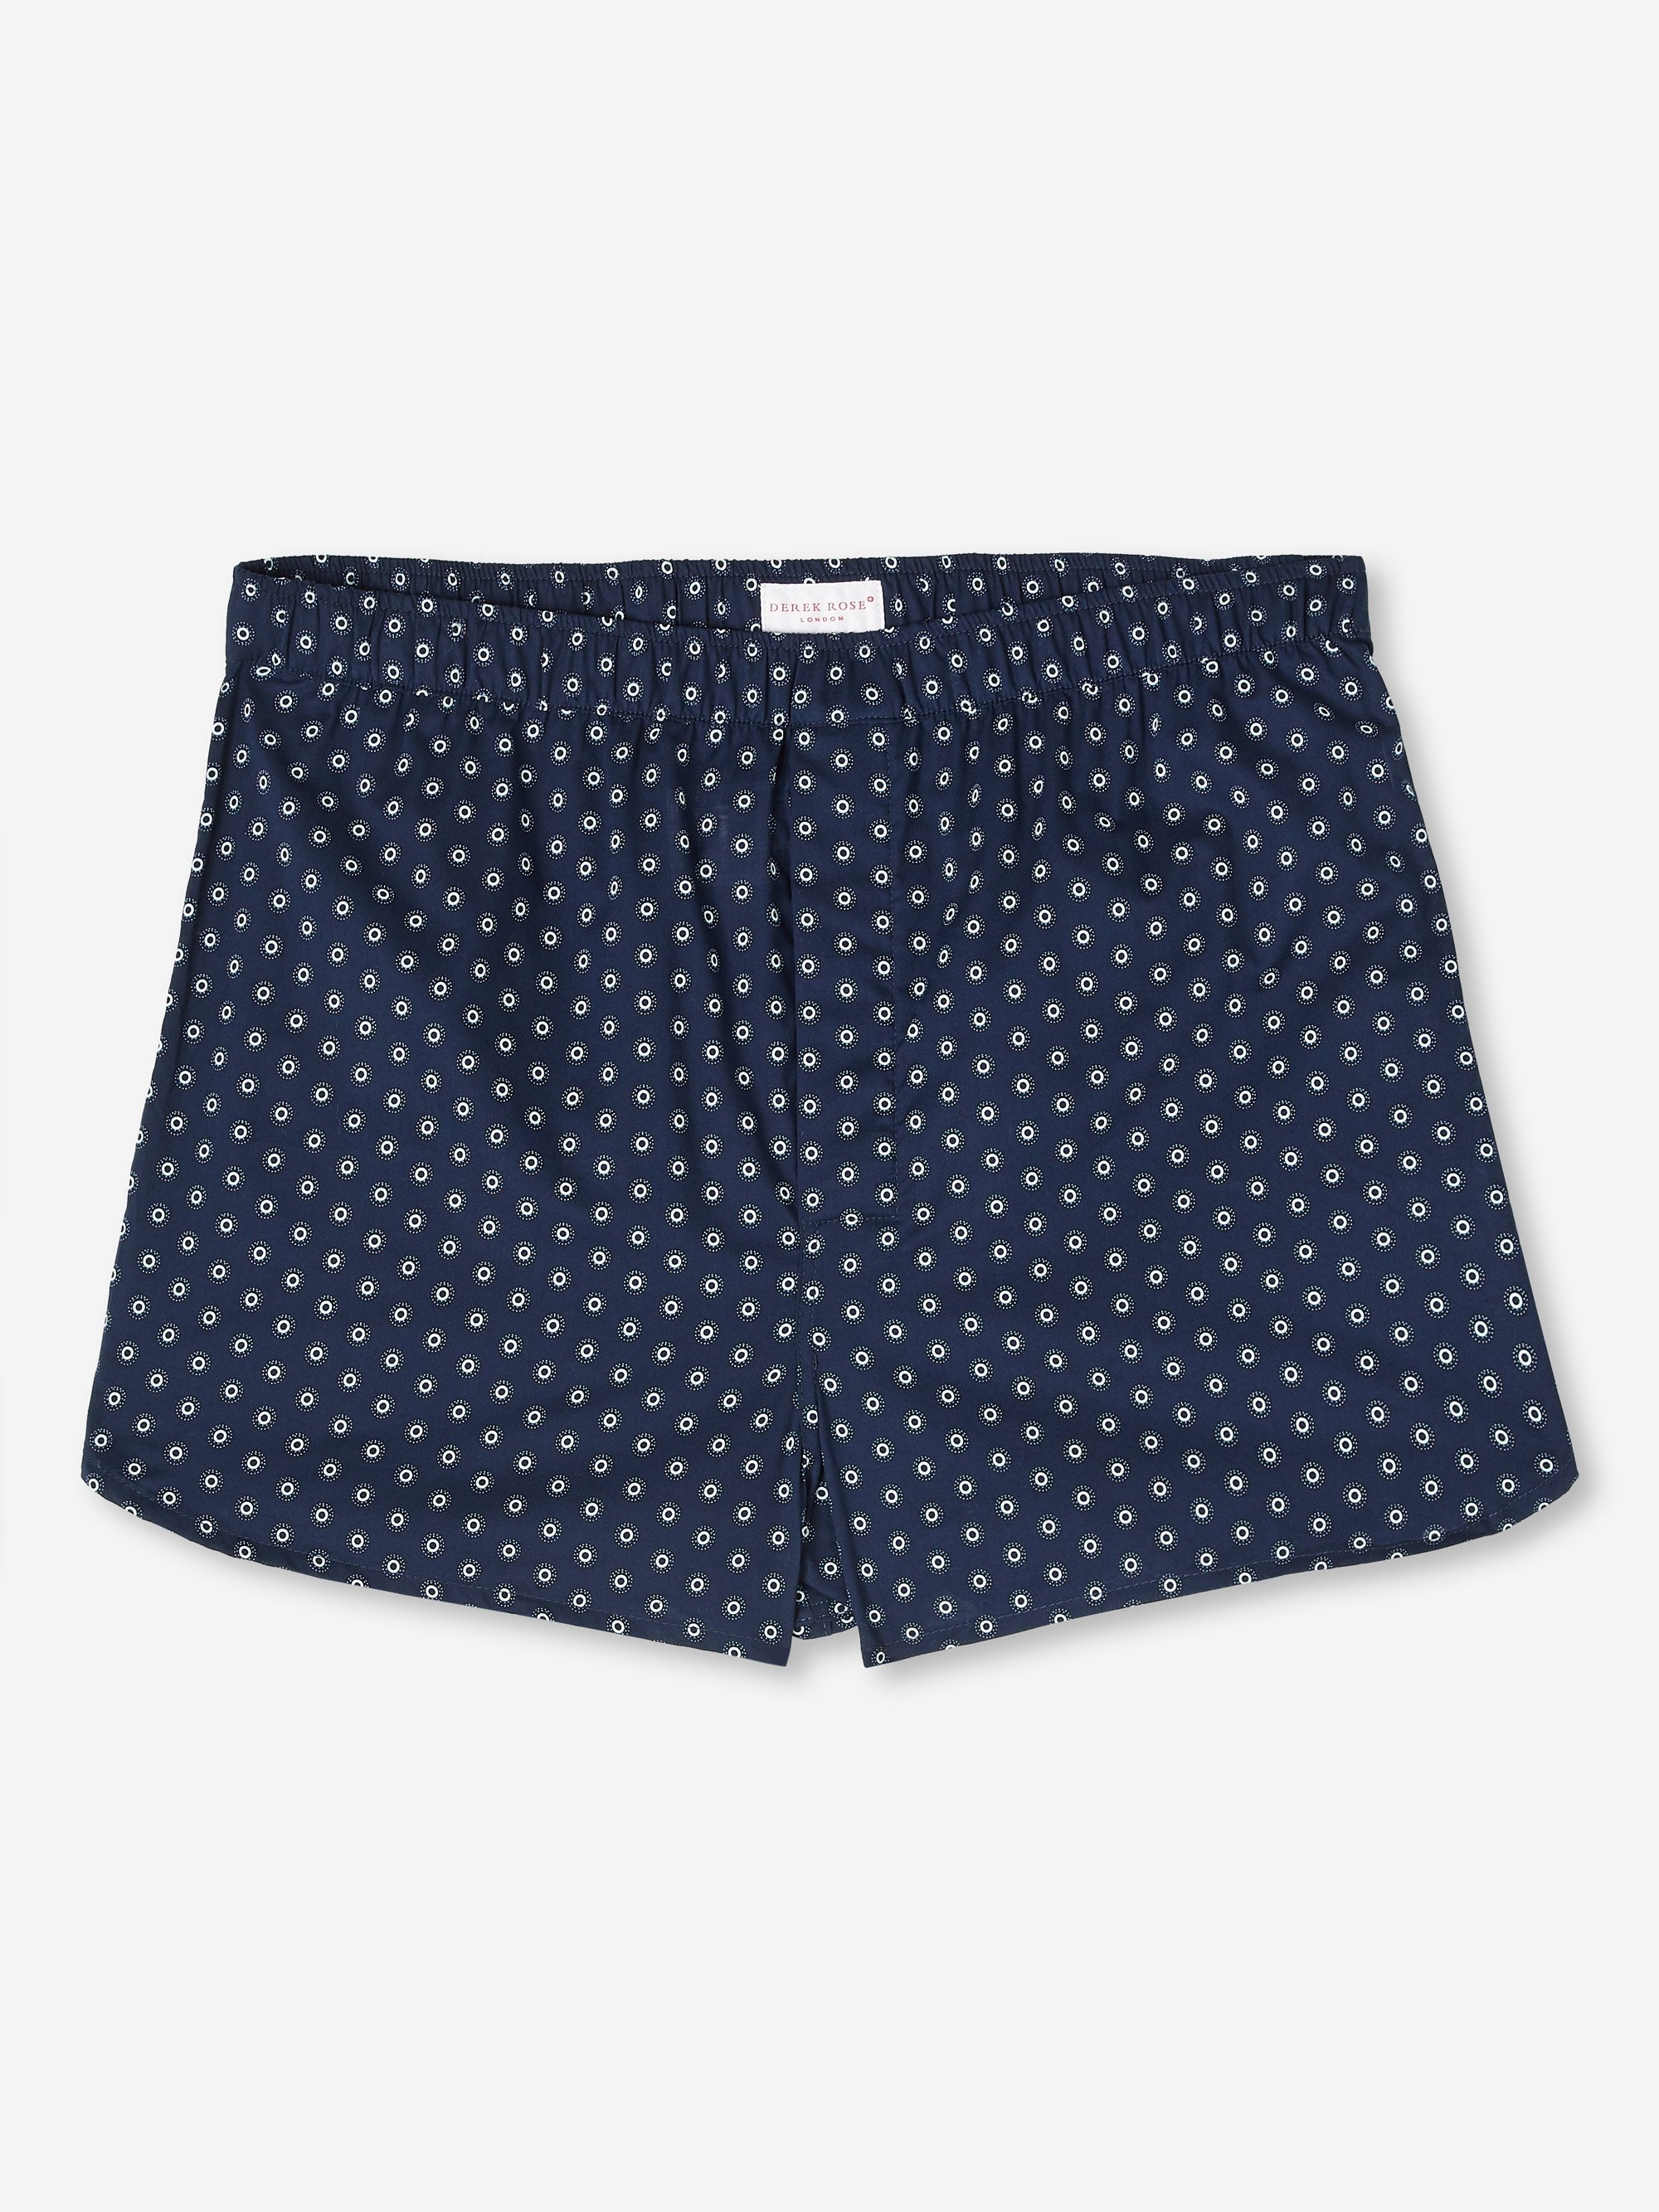 Men's Modern Fit Boxer Shorts Nelson 78 Cotton Batiste Navy